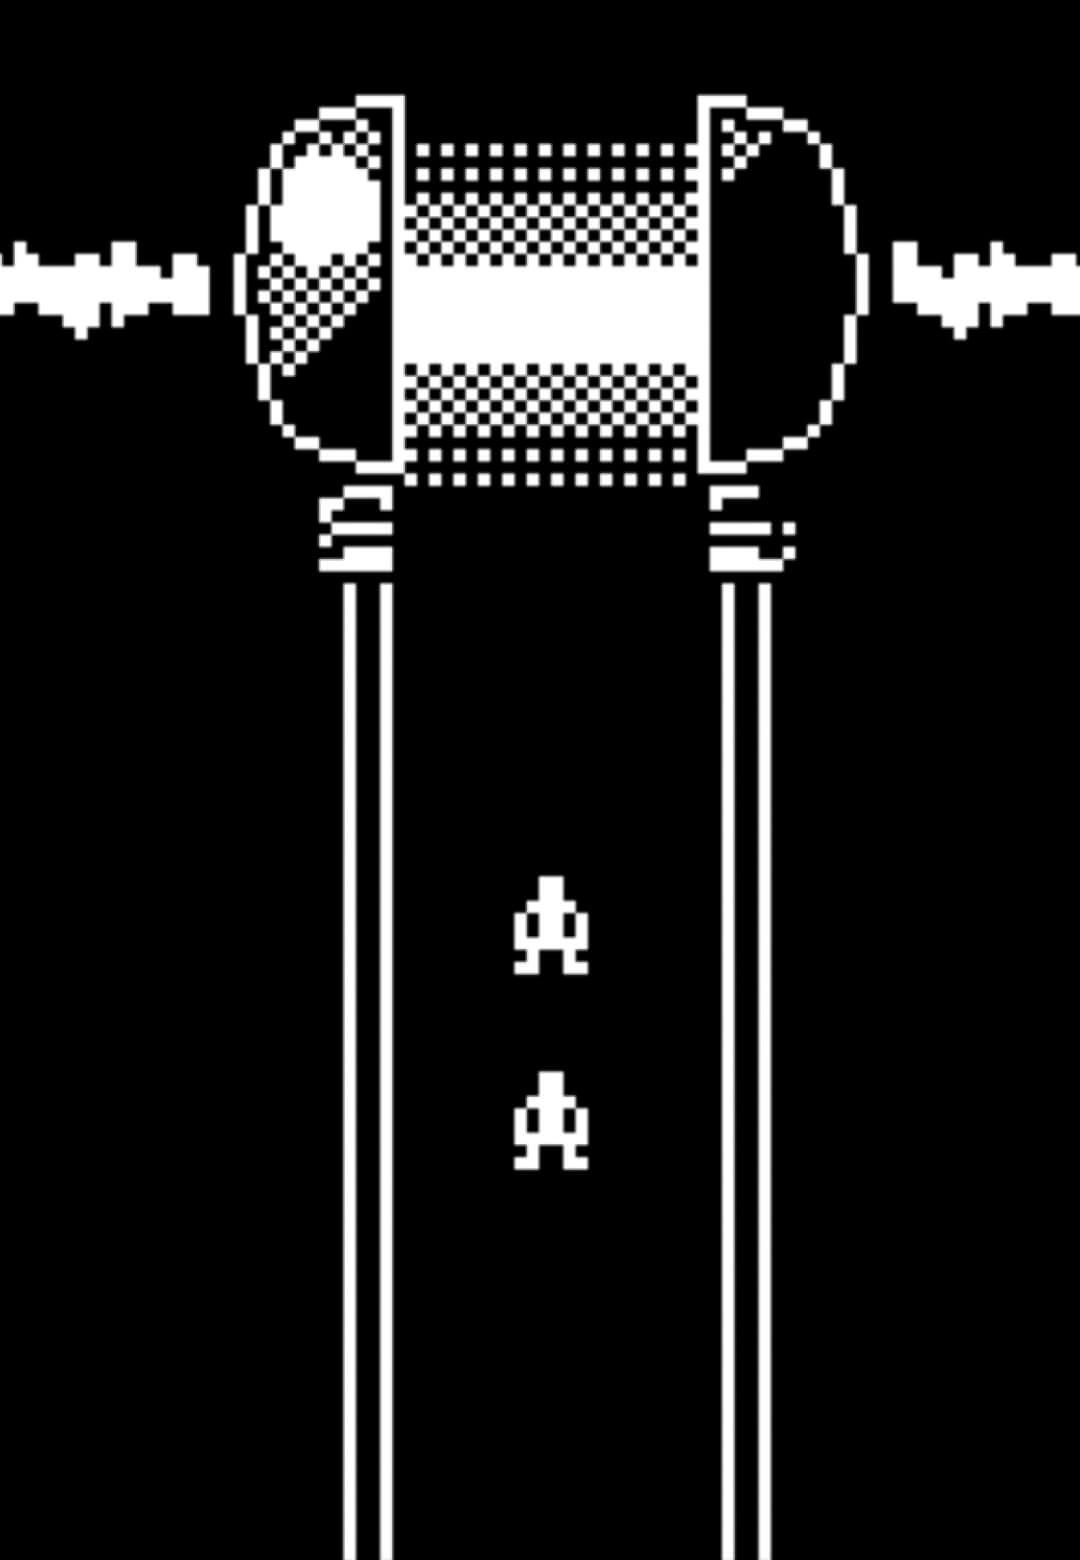 'Operation: Labrat' is a game created by William J Holly using Bitsy | Operation: Labrat | William J Holly | STIRworld